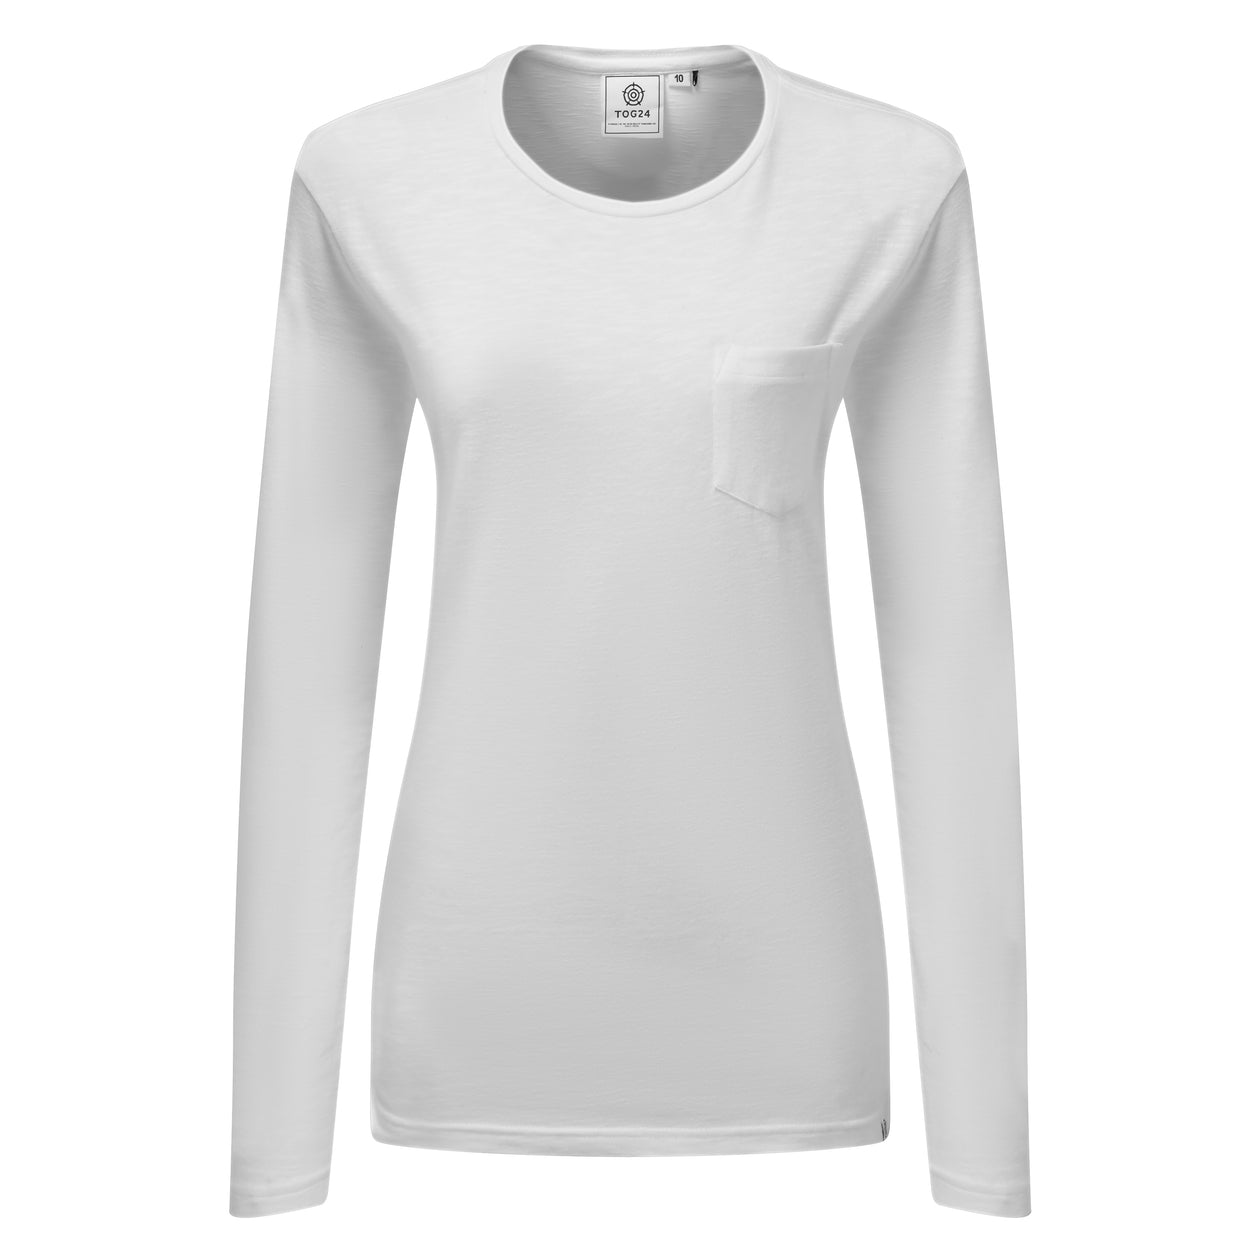 Myrtle Womens Long Sleeve Pocket T-Shirt - Ice Grey image 4